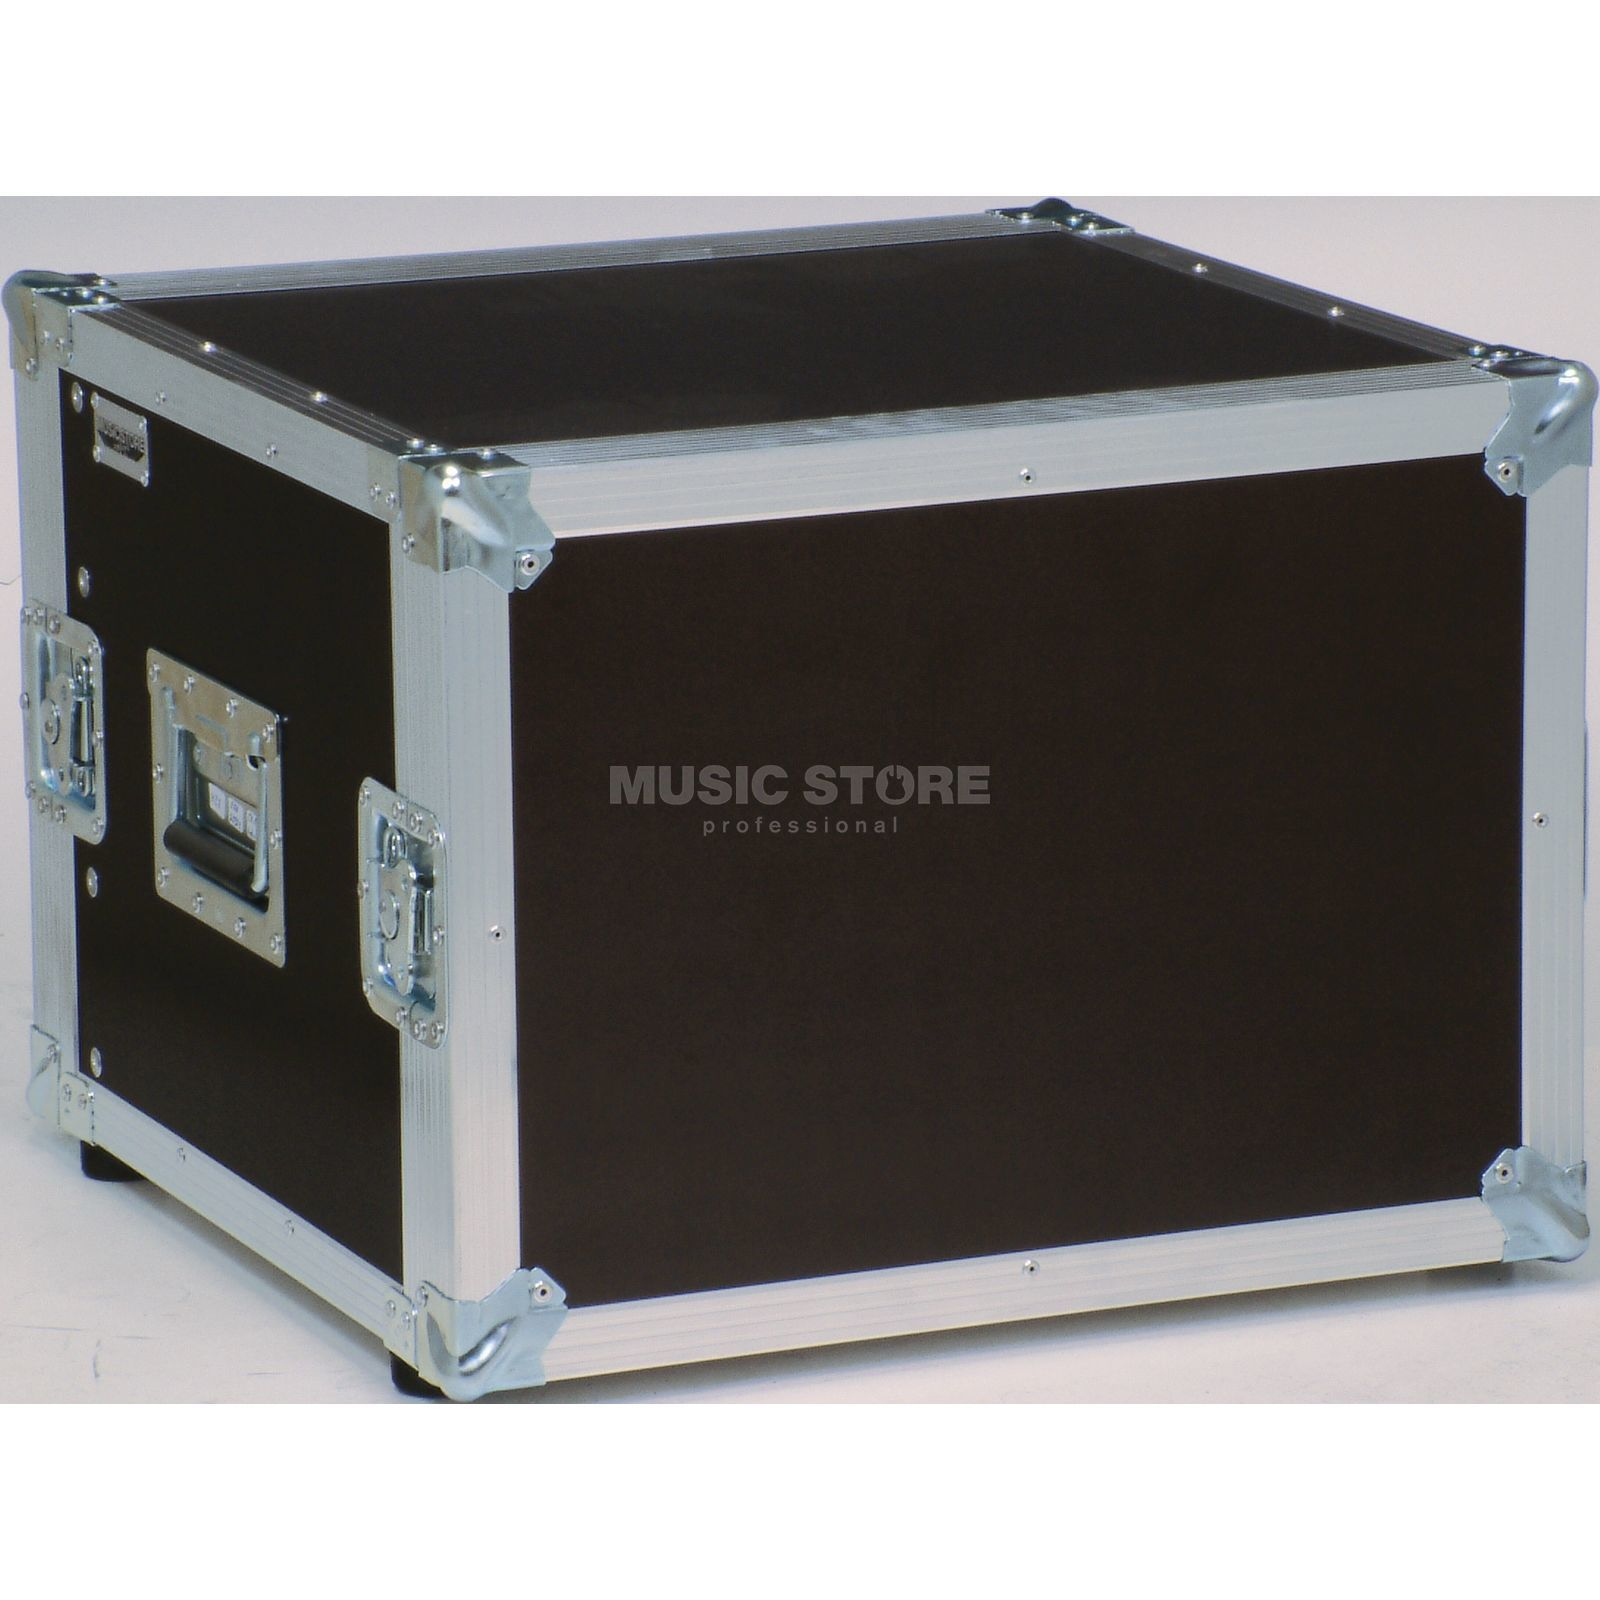 "MUSIC STORE Profi 19"" Rack 8HE DD PH-Brown Produktbillede"